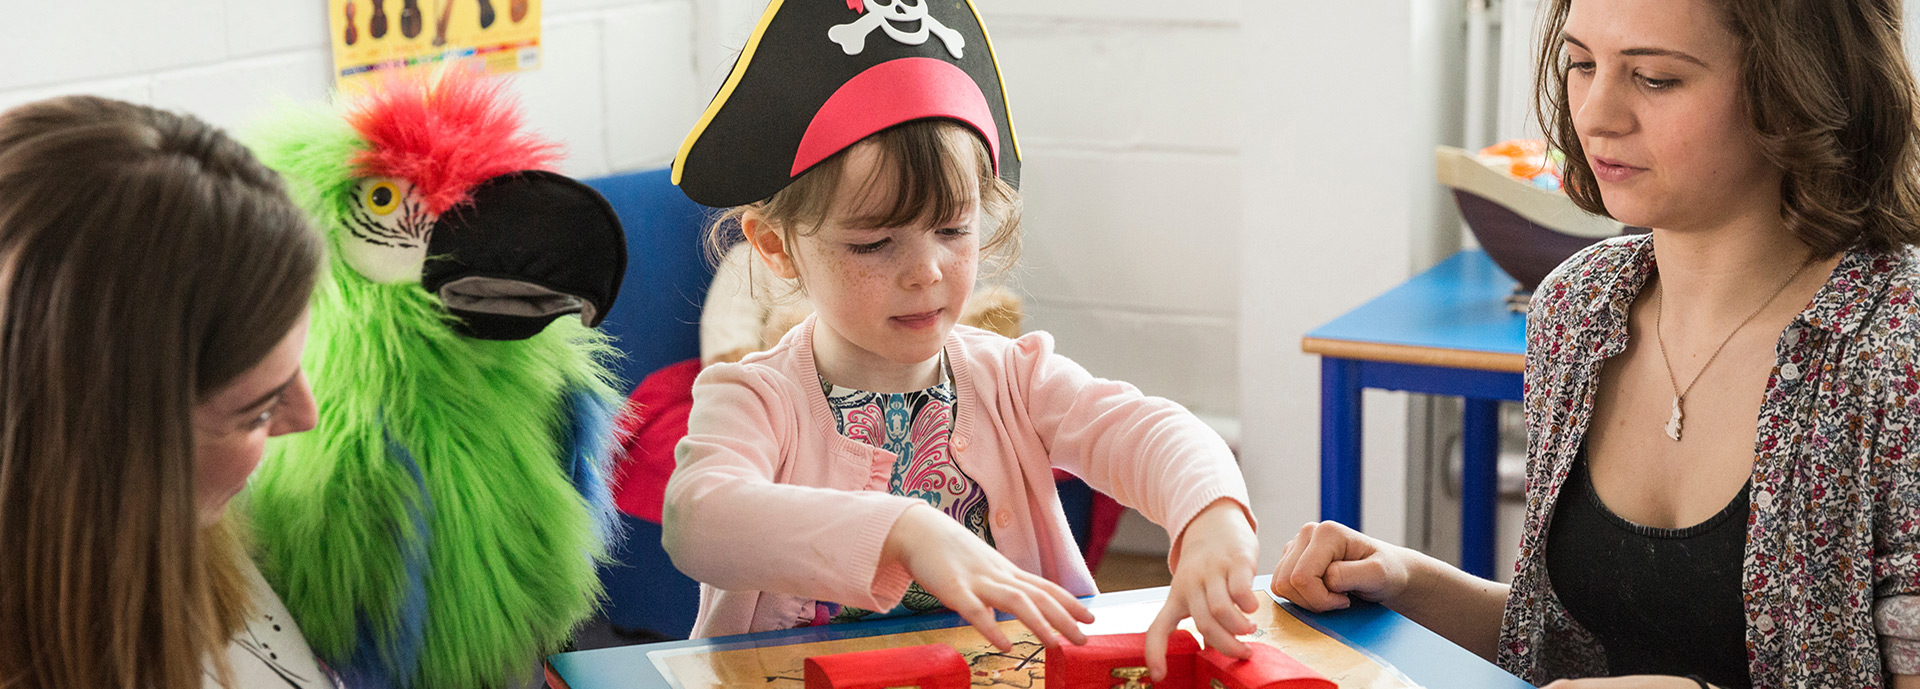 Two researchers, one with toy parrot, and child with pirate hat run an experiment